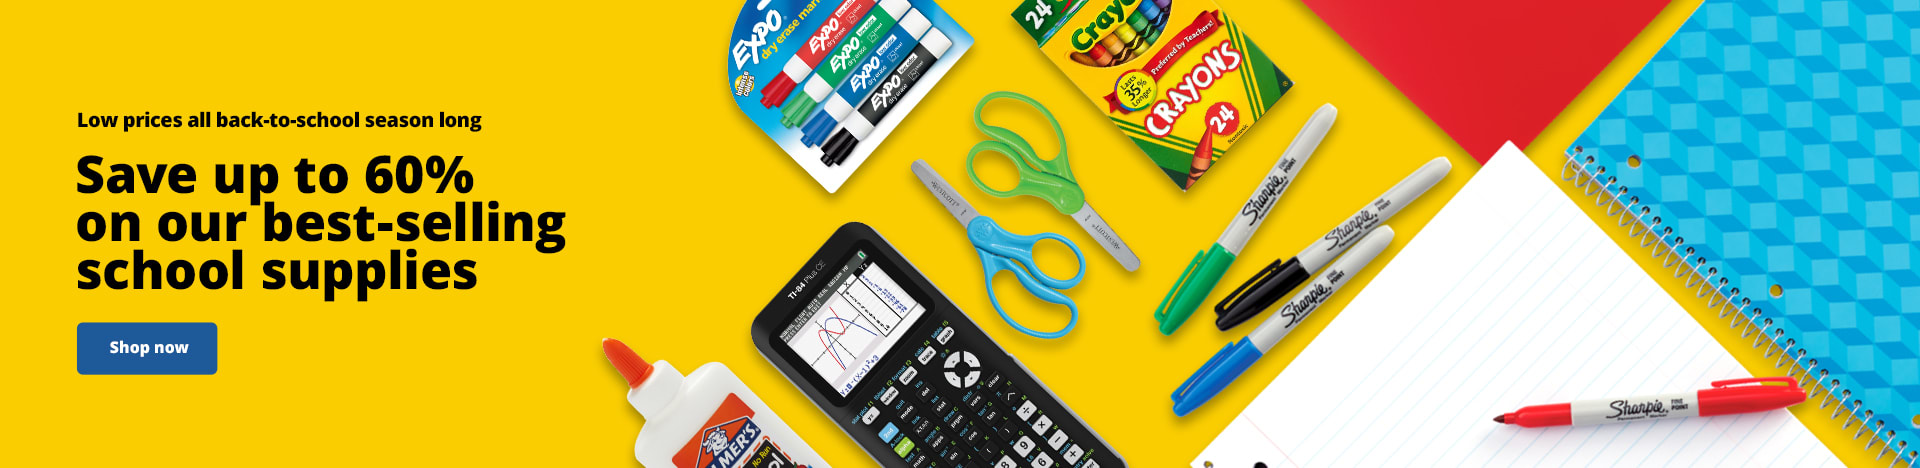 Low prices all back-to-school season long. Save up to 60% on our best-selling school supplies